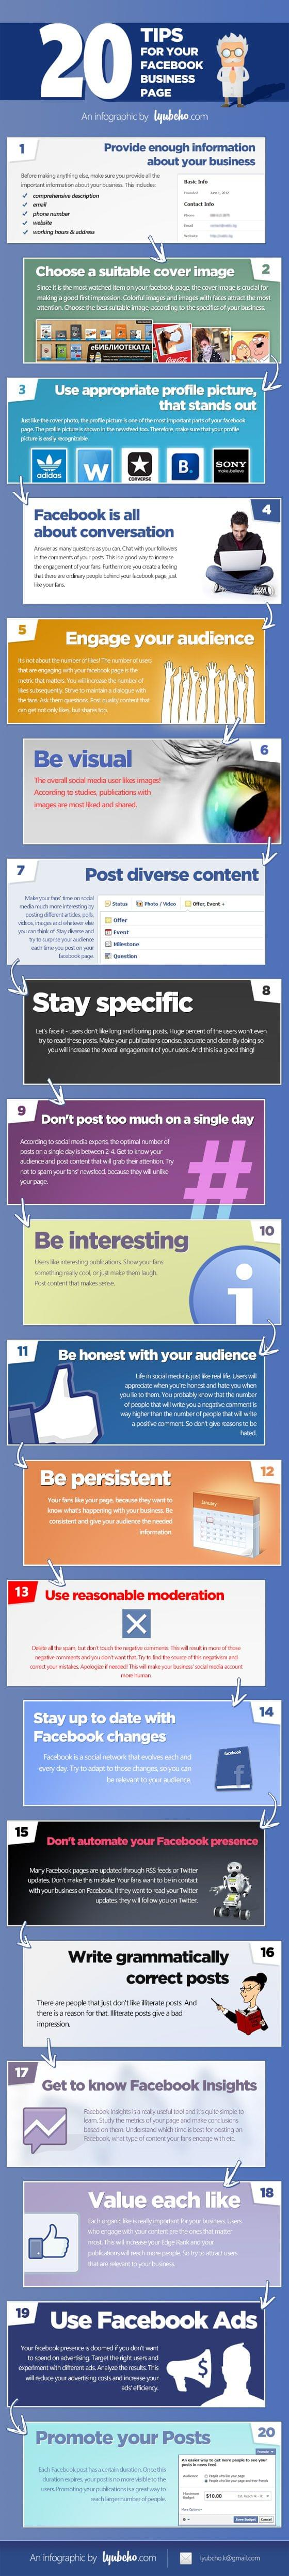 20 Tips for Your Company Facebook Page